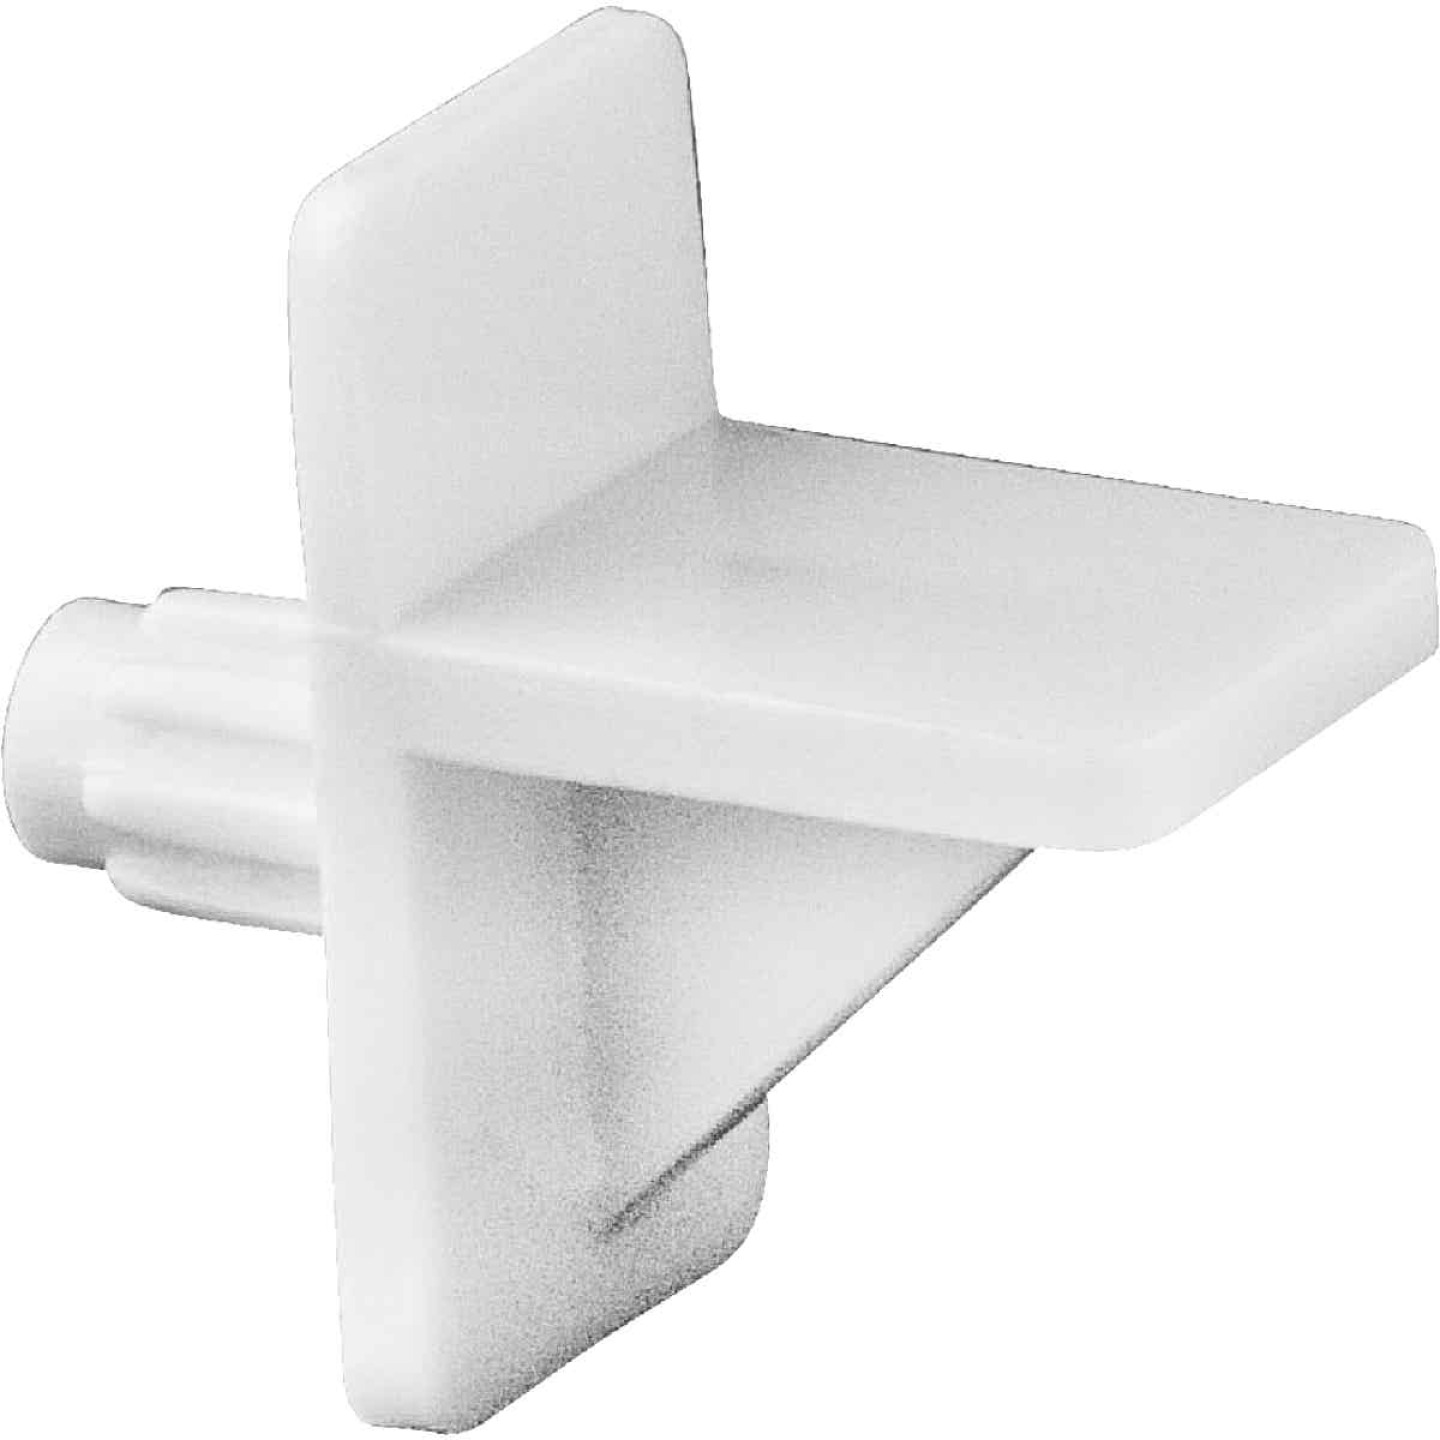 National 159 1/4 In. White Plastic Shelf Support (8-Count) Image 1